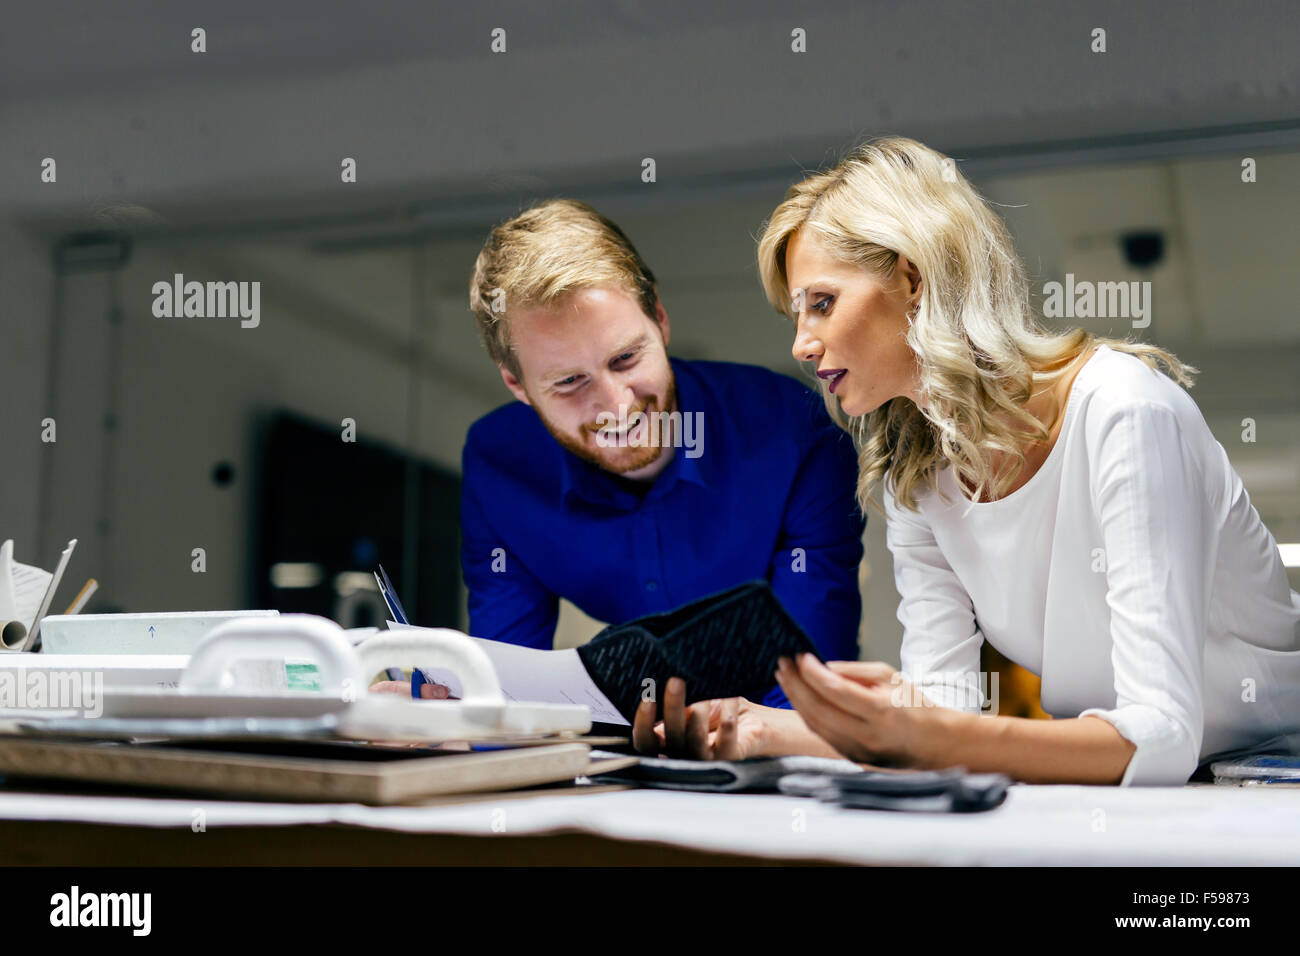 People working in fashion industry and designing clothes - Stock Image